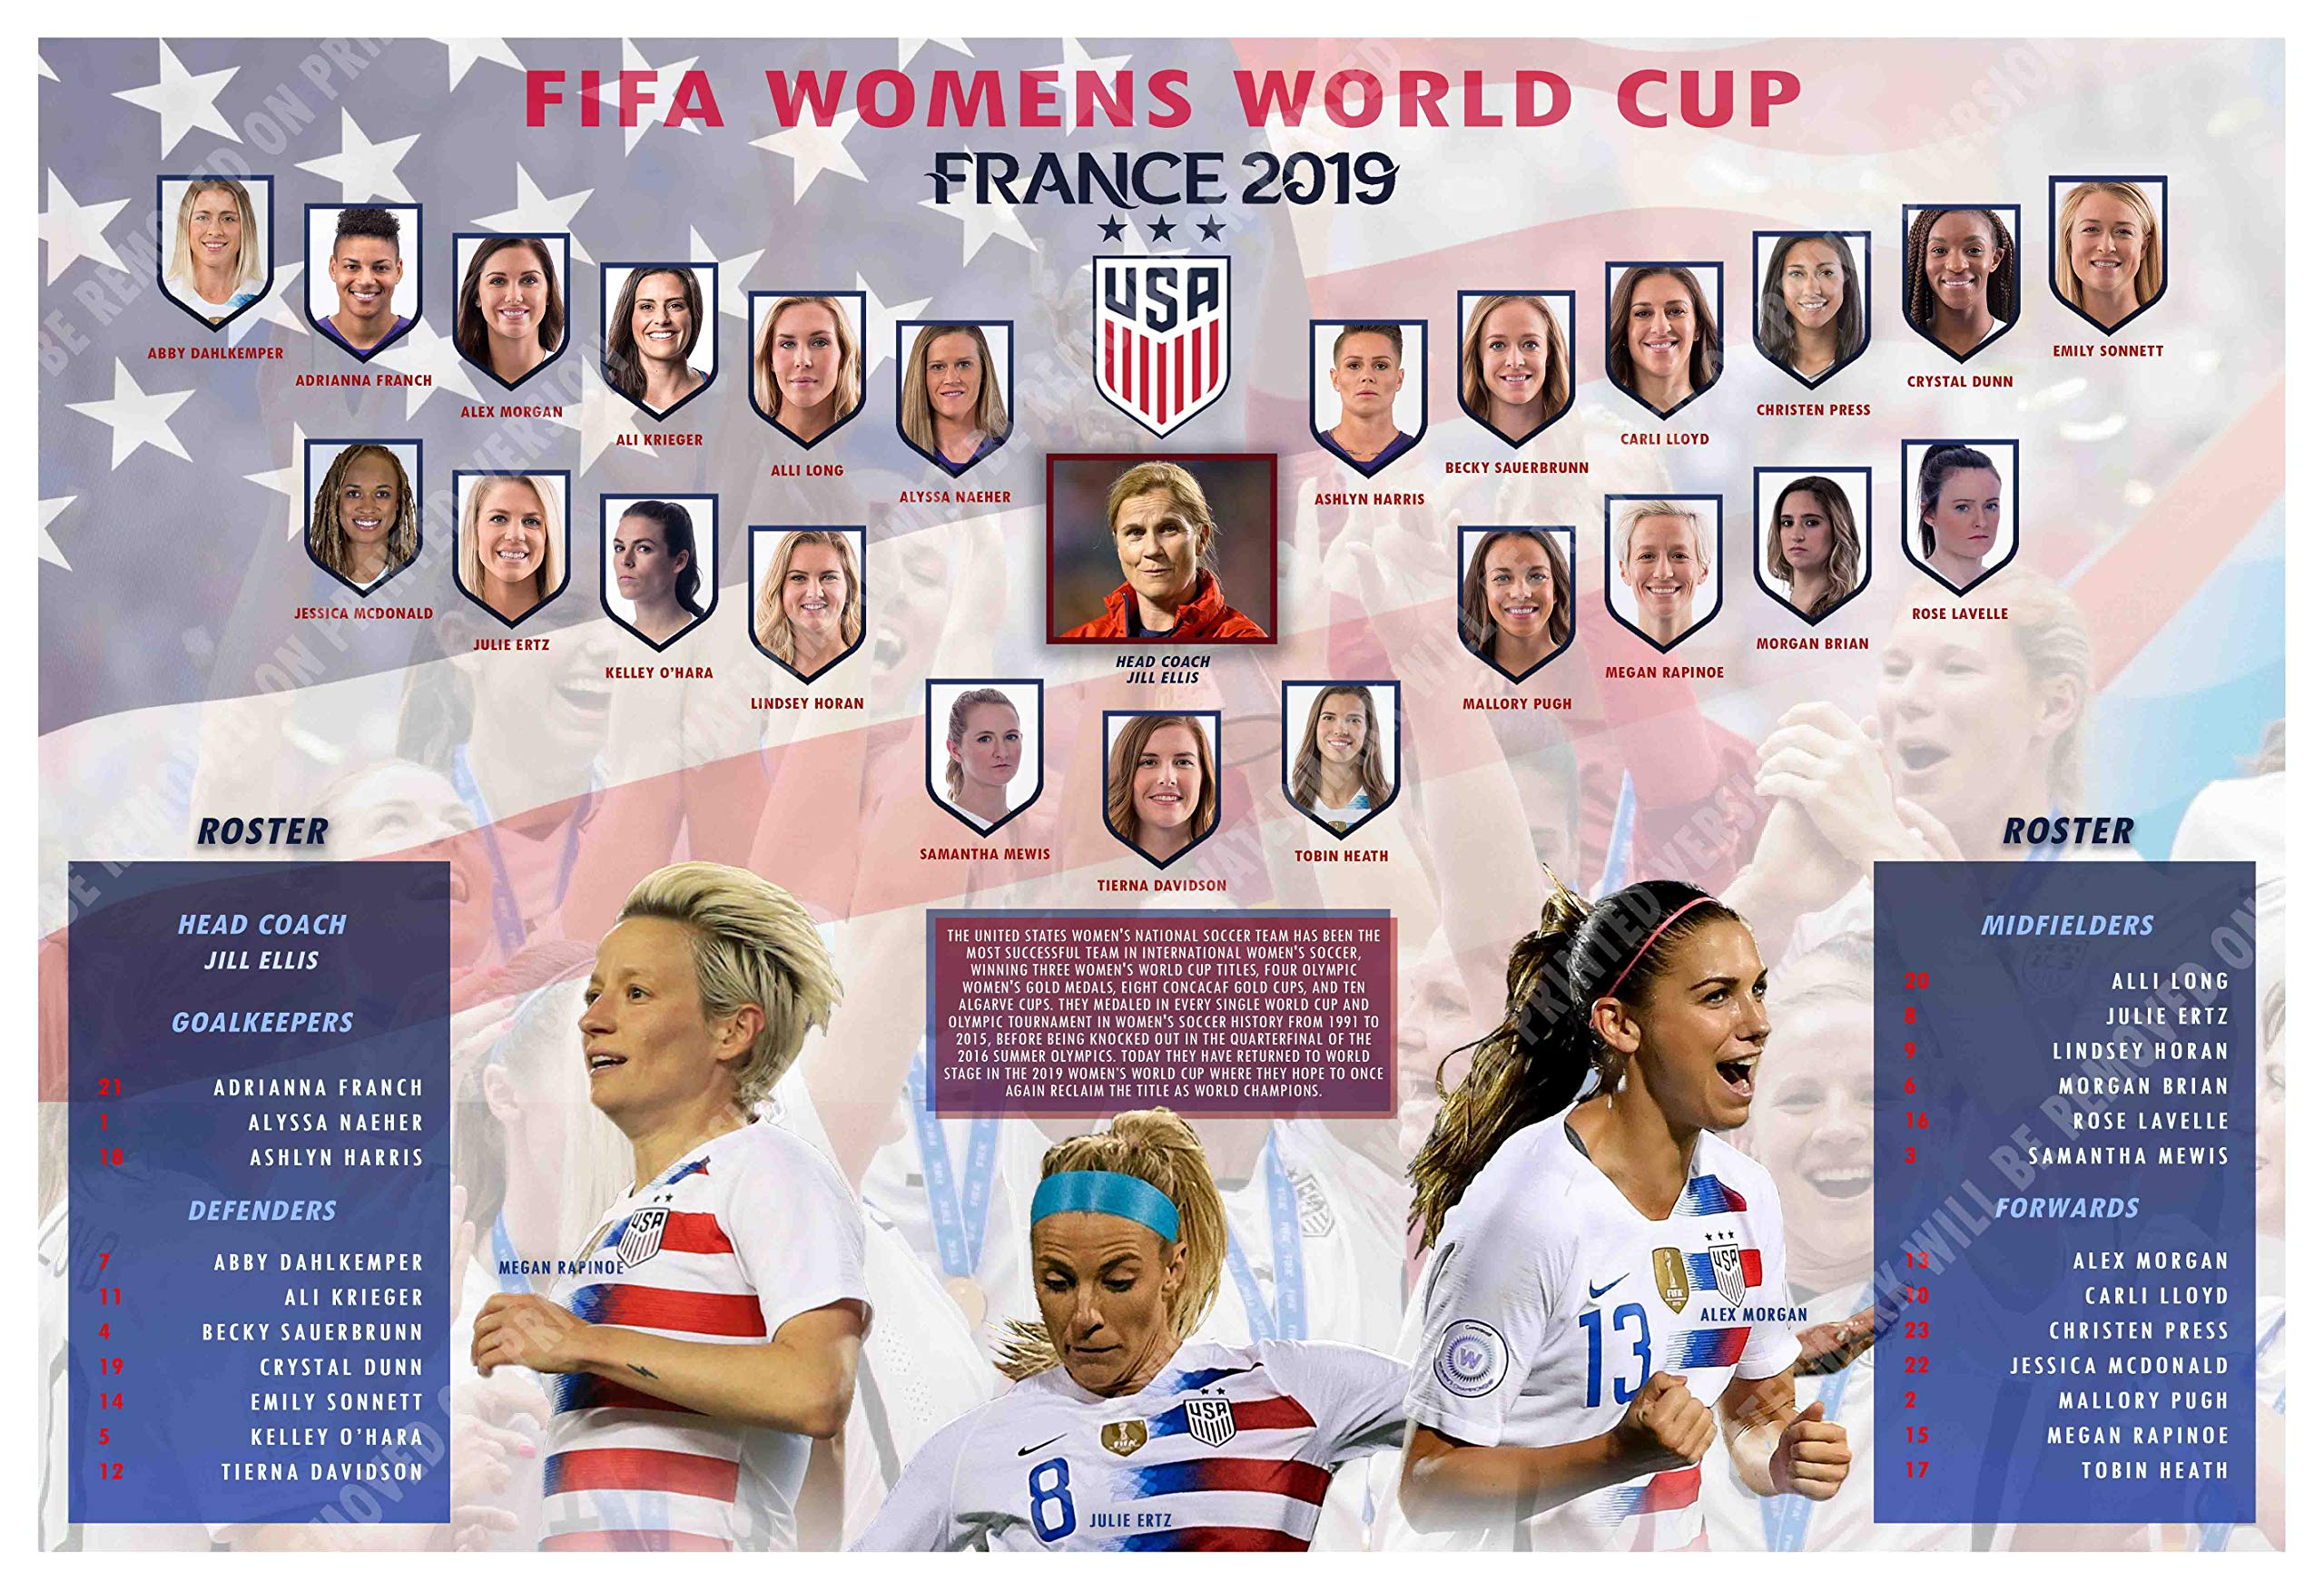 PosterWarehouse2017 The 2019 U.S. Women's World Cup Soccer Team Commemorative Poster by PosterWarehouse2017